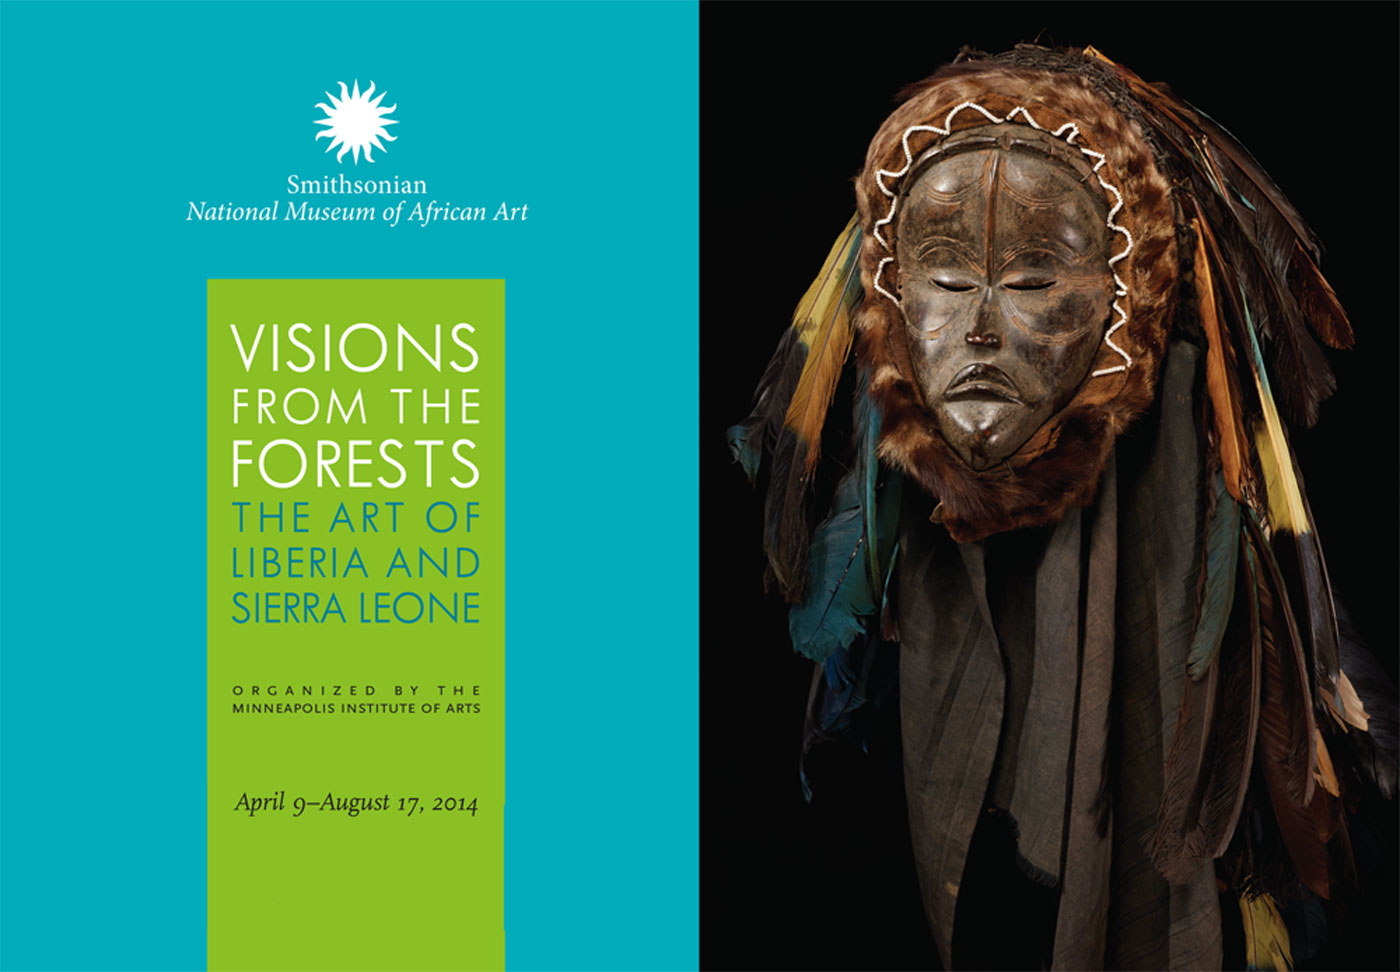 Visions from the Forest The Art of Liberia and Sierra Leone